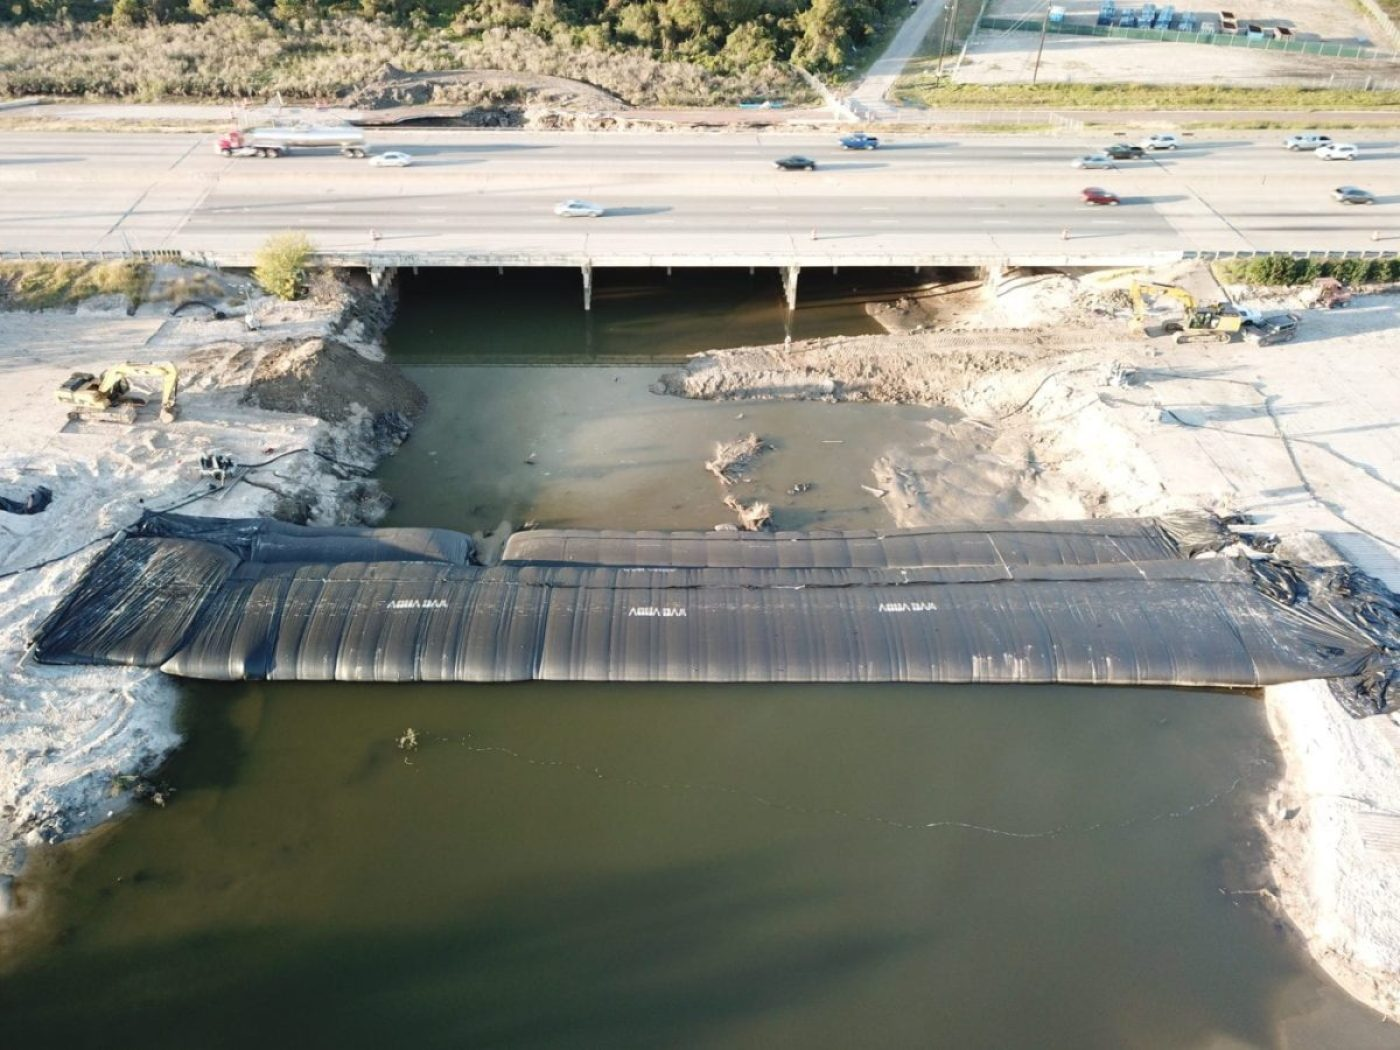 The Isolation of these bridge piers, for post-Hurricane Harvey inspection and scour repair, was achieved using a combination of 300ft long by 16ft tall sections of AquaDam supported by 8ft AquaDam sections. (AquaDam image)